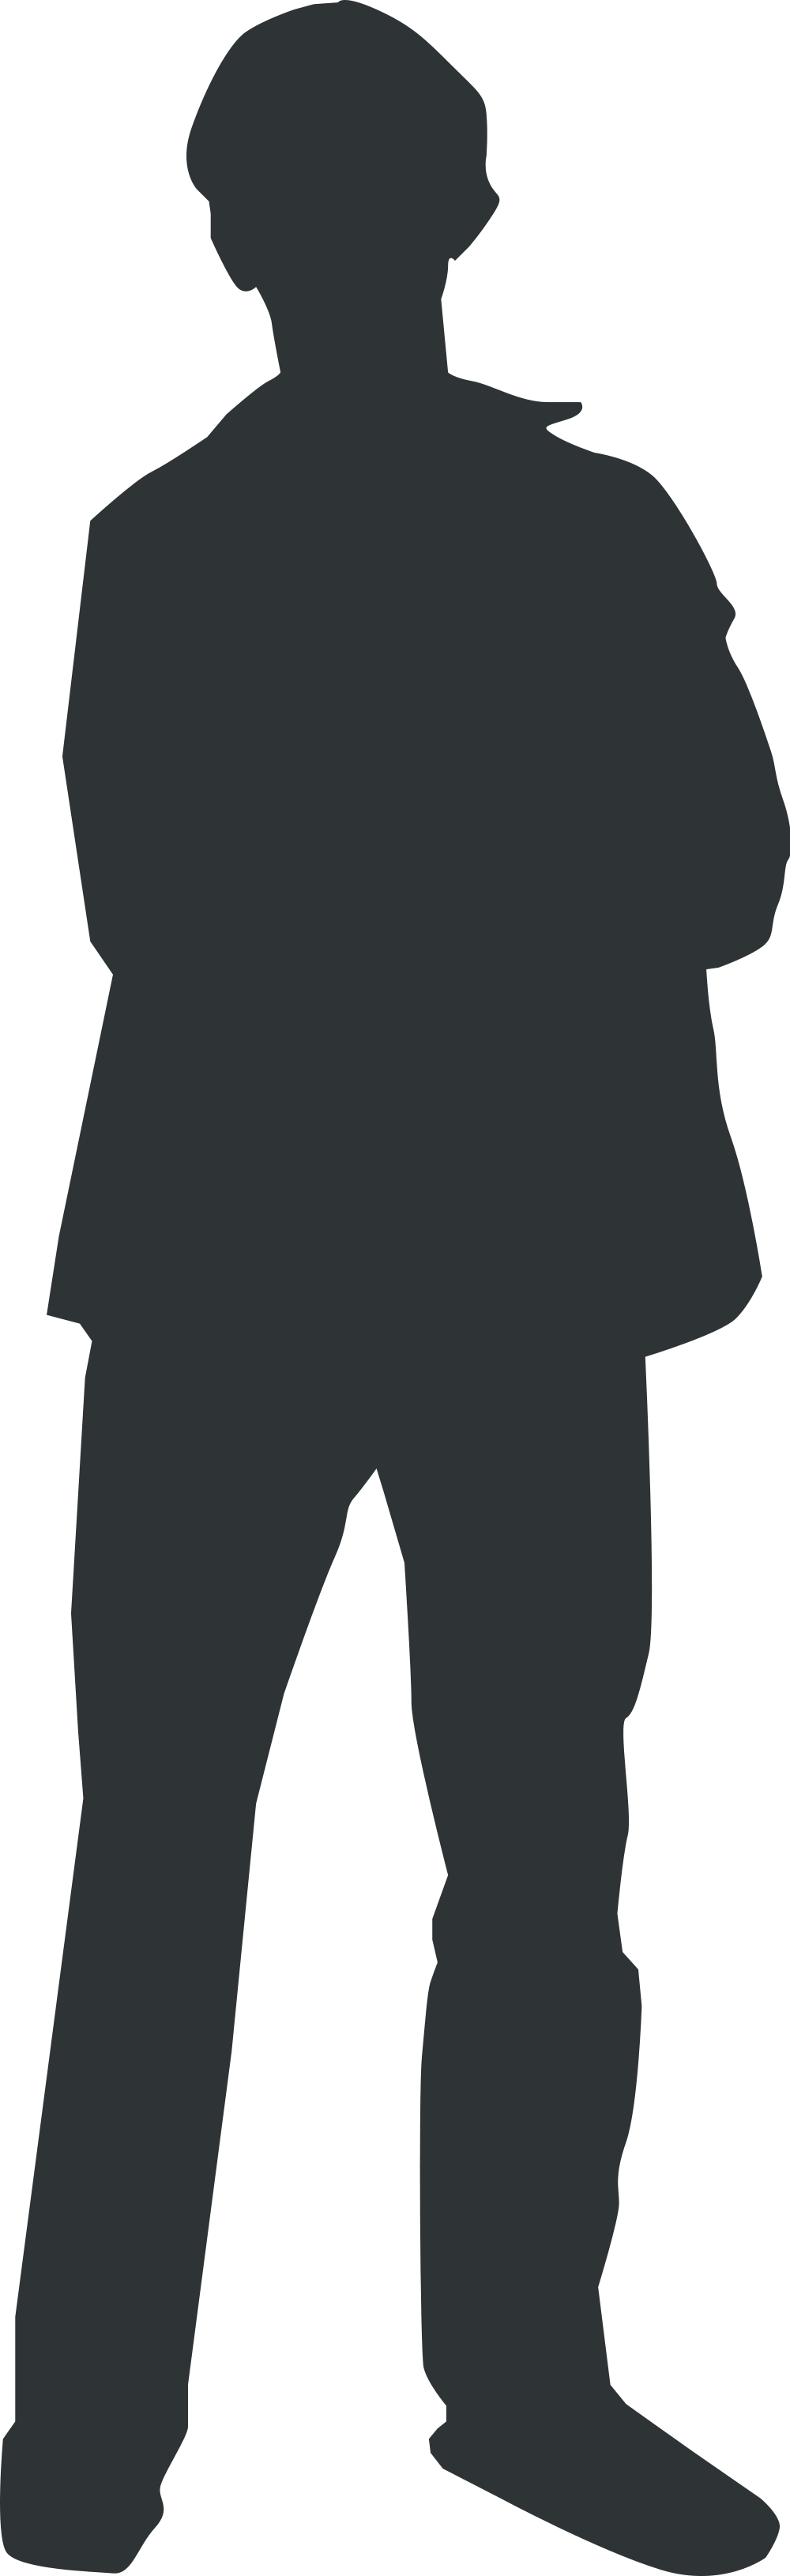 Shadow man png. File person outline svg